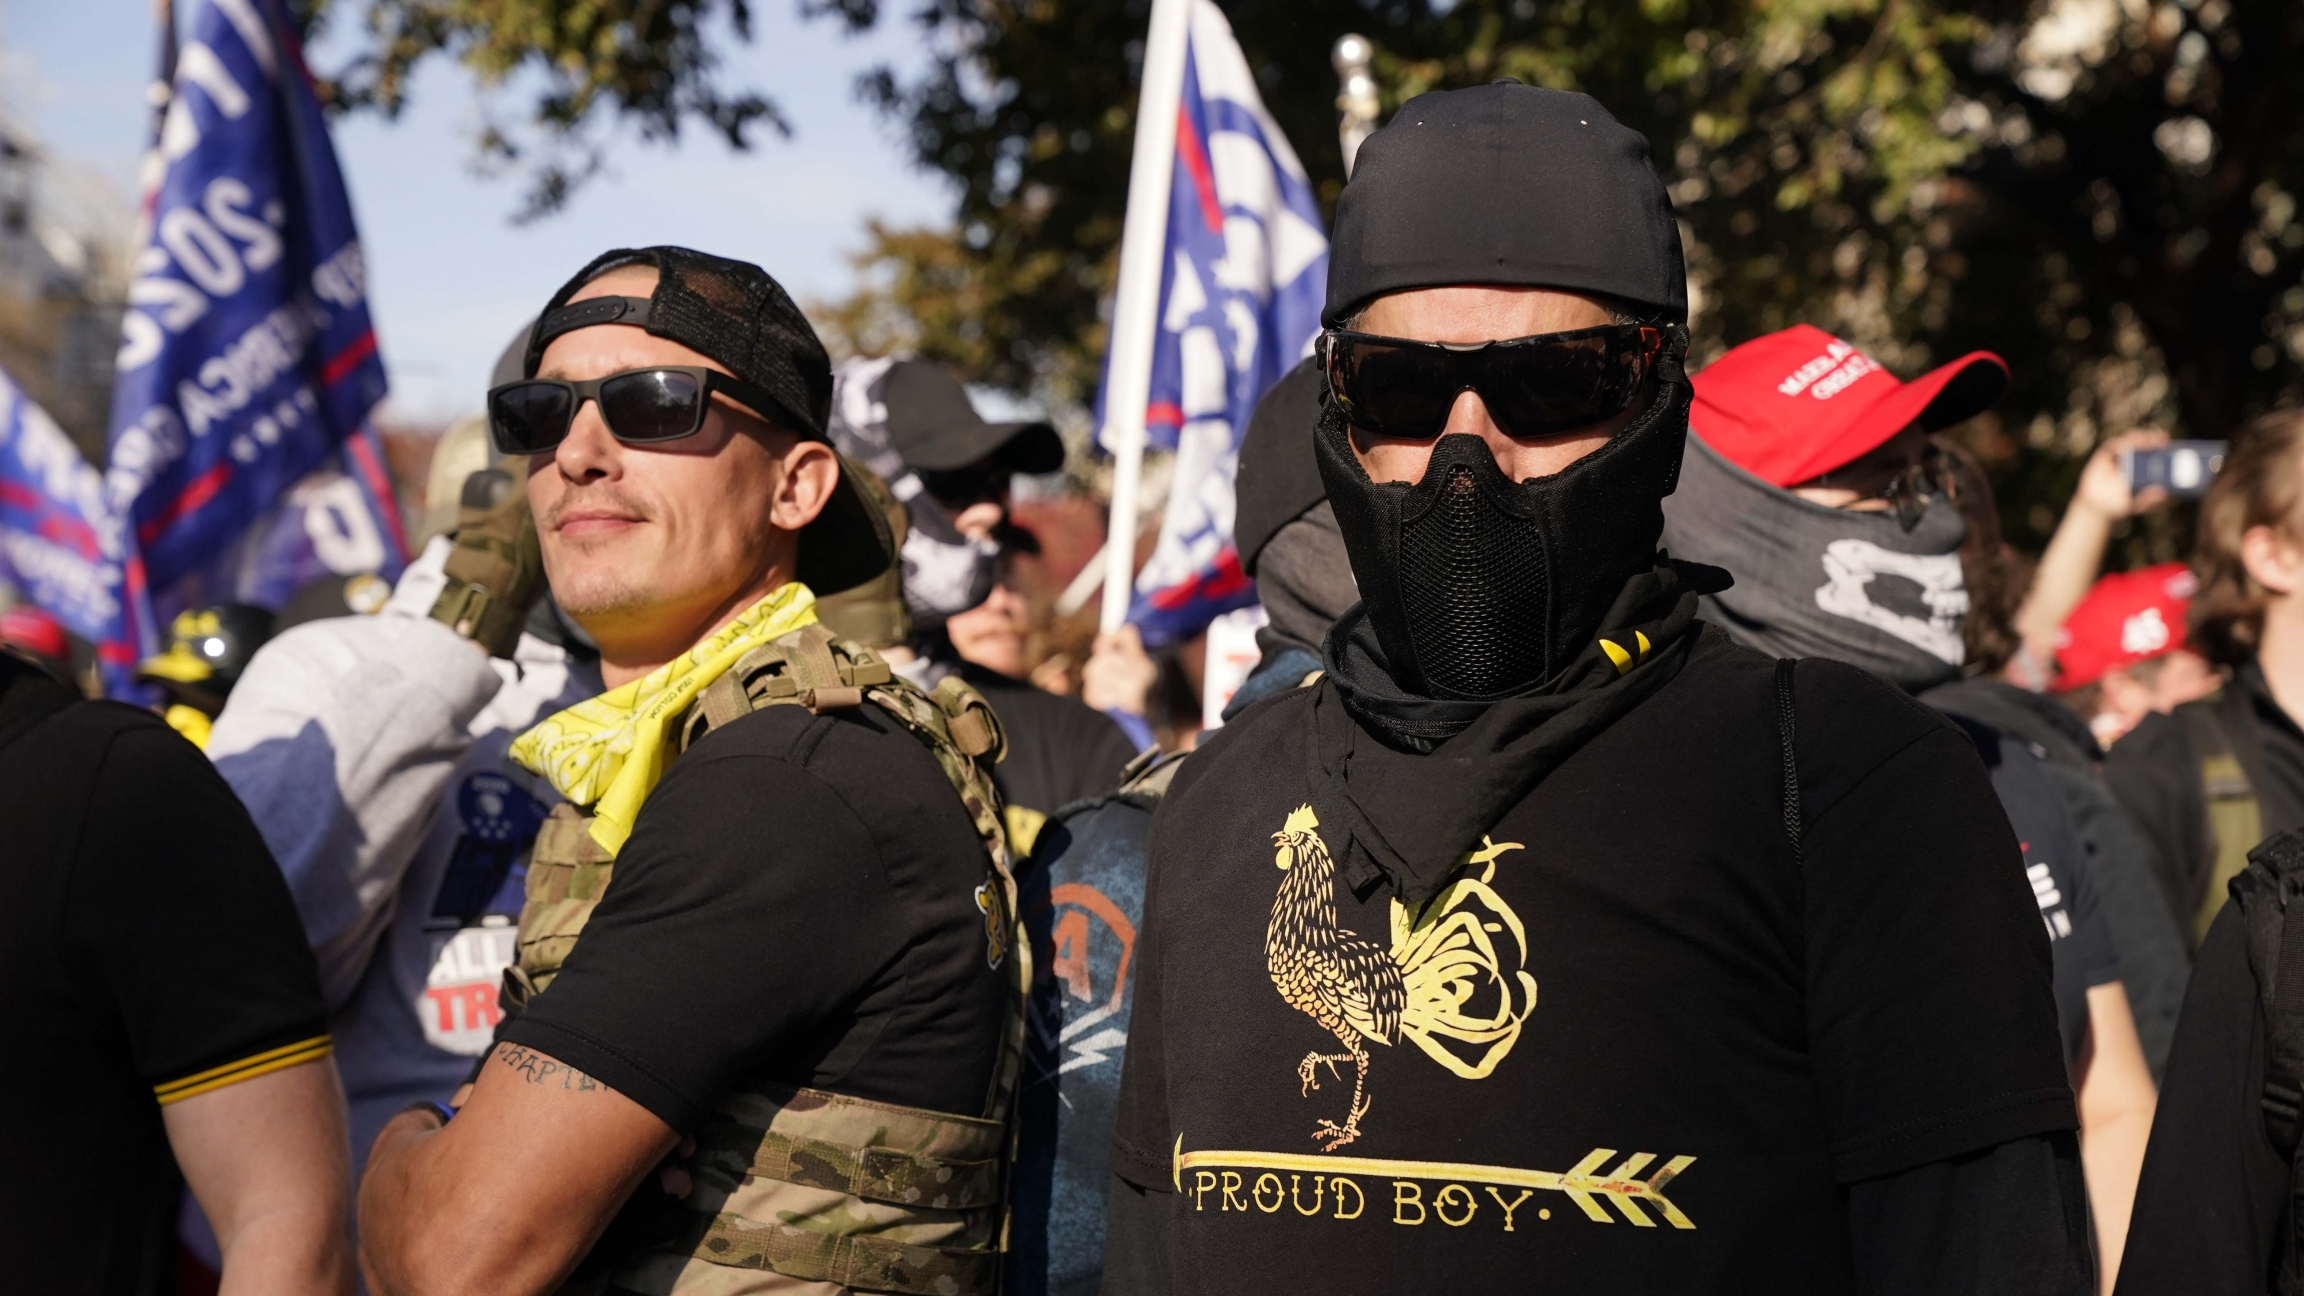 People wearing shirts with Proud Boys on them join supporters of President Donald Trump in a march Nov. 14, 2020, in Washington, DC.